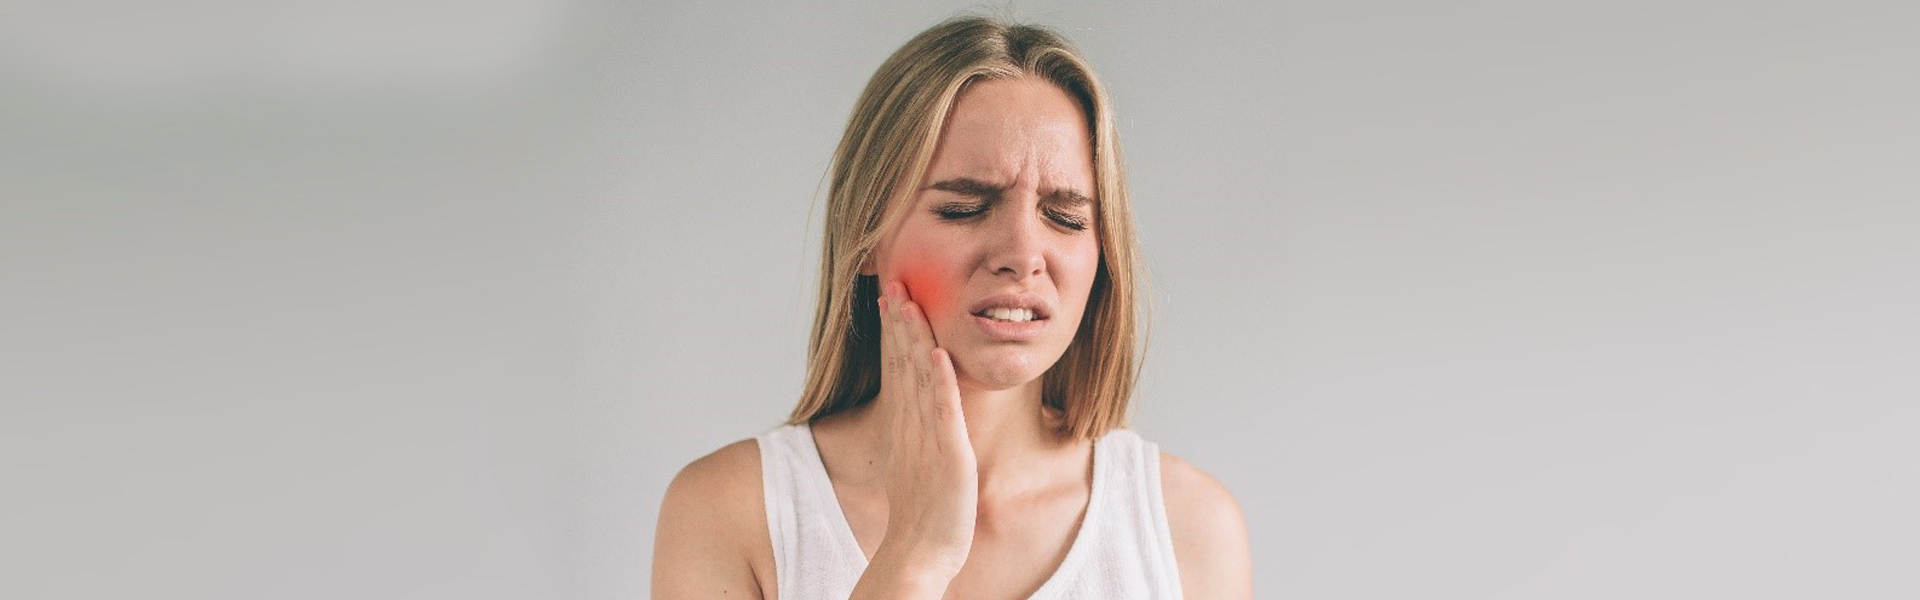 7 Home Remedies to Treat Gum Infection